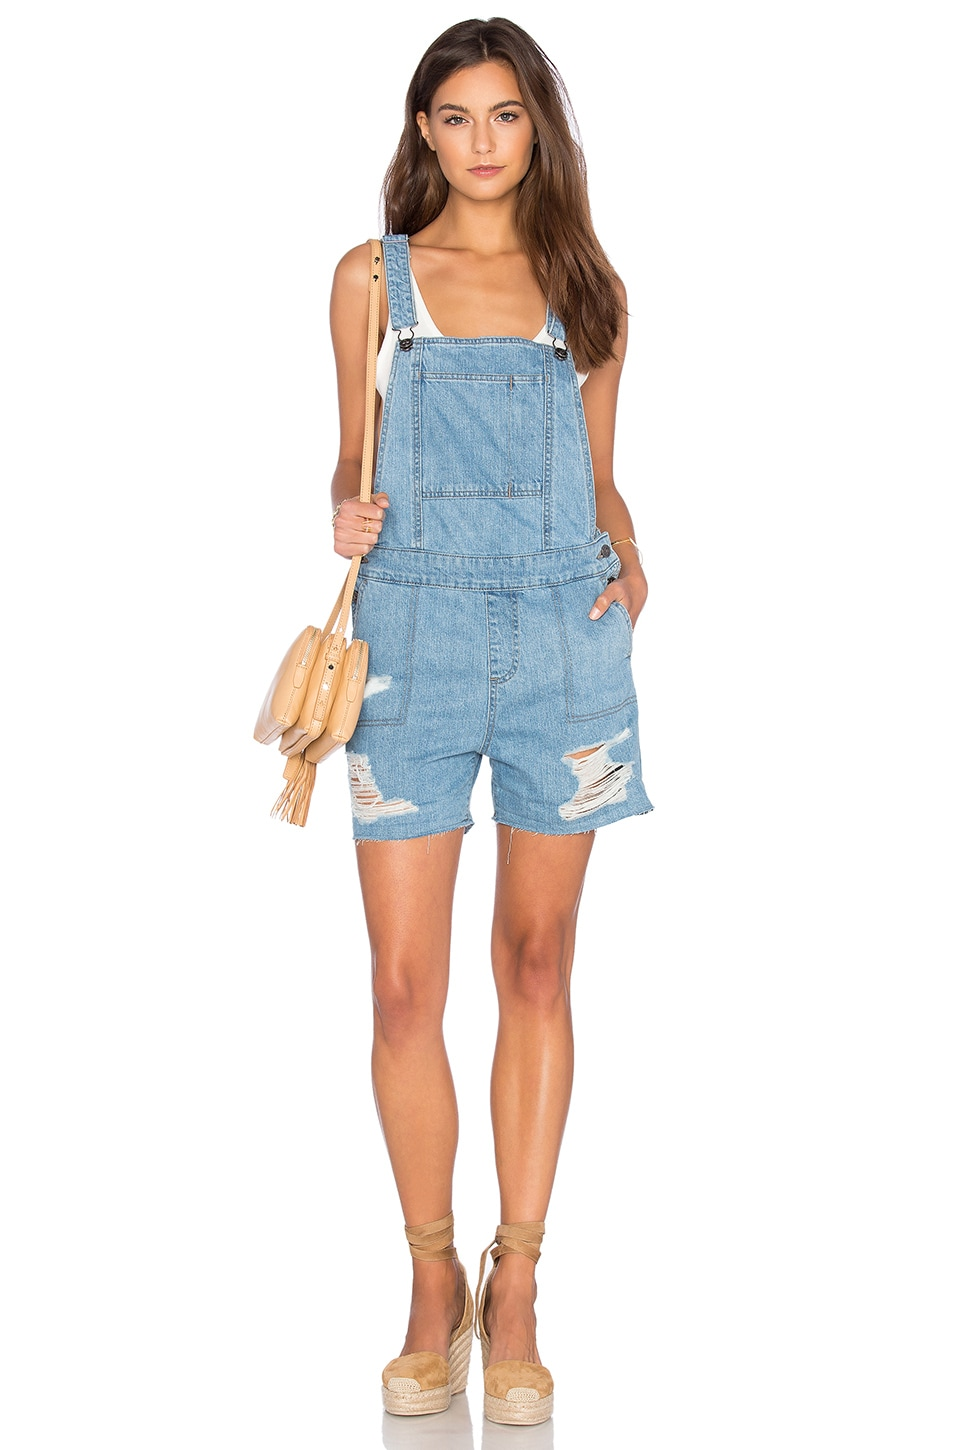 DL1961 Cara Short Overall in Campfire